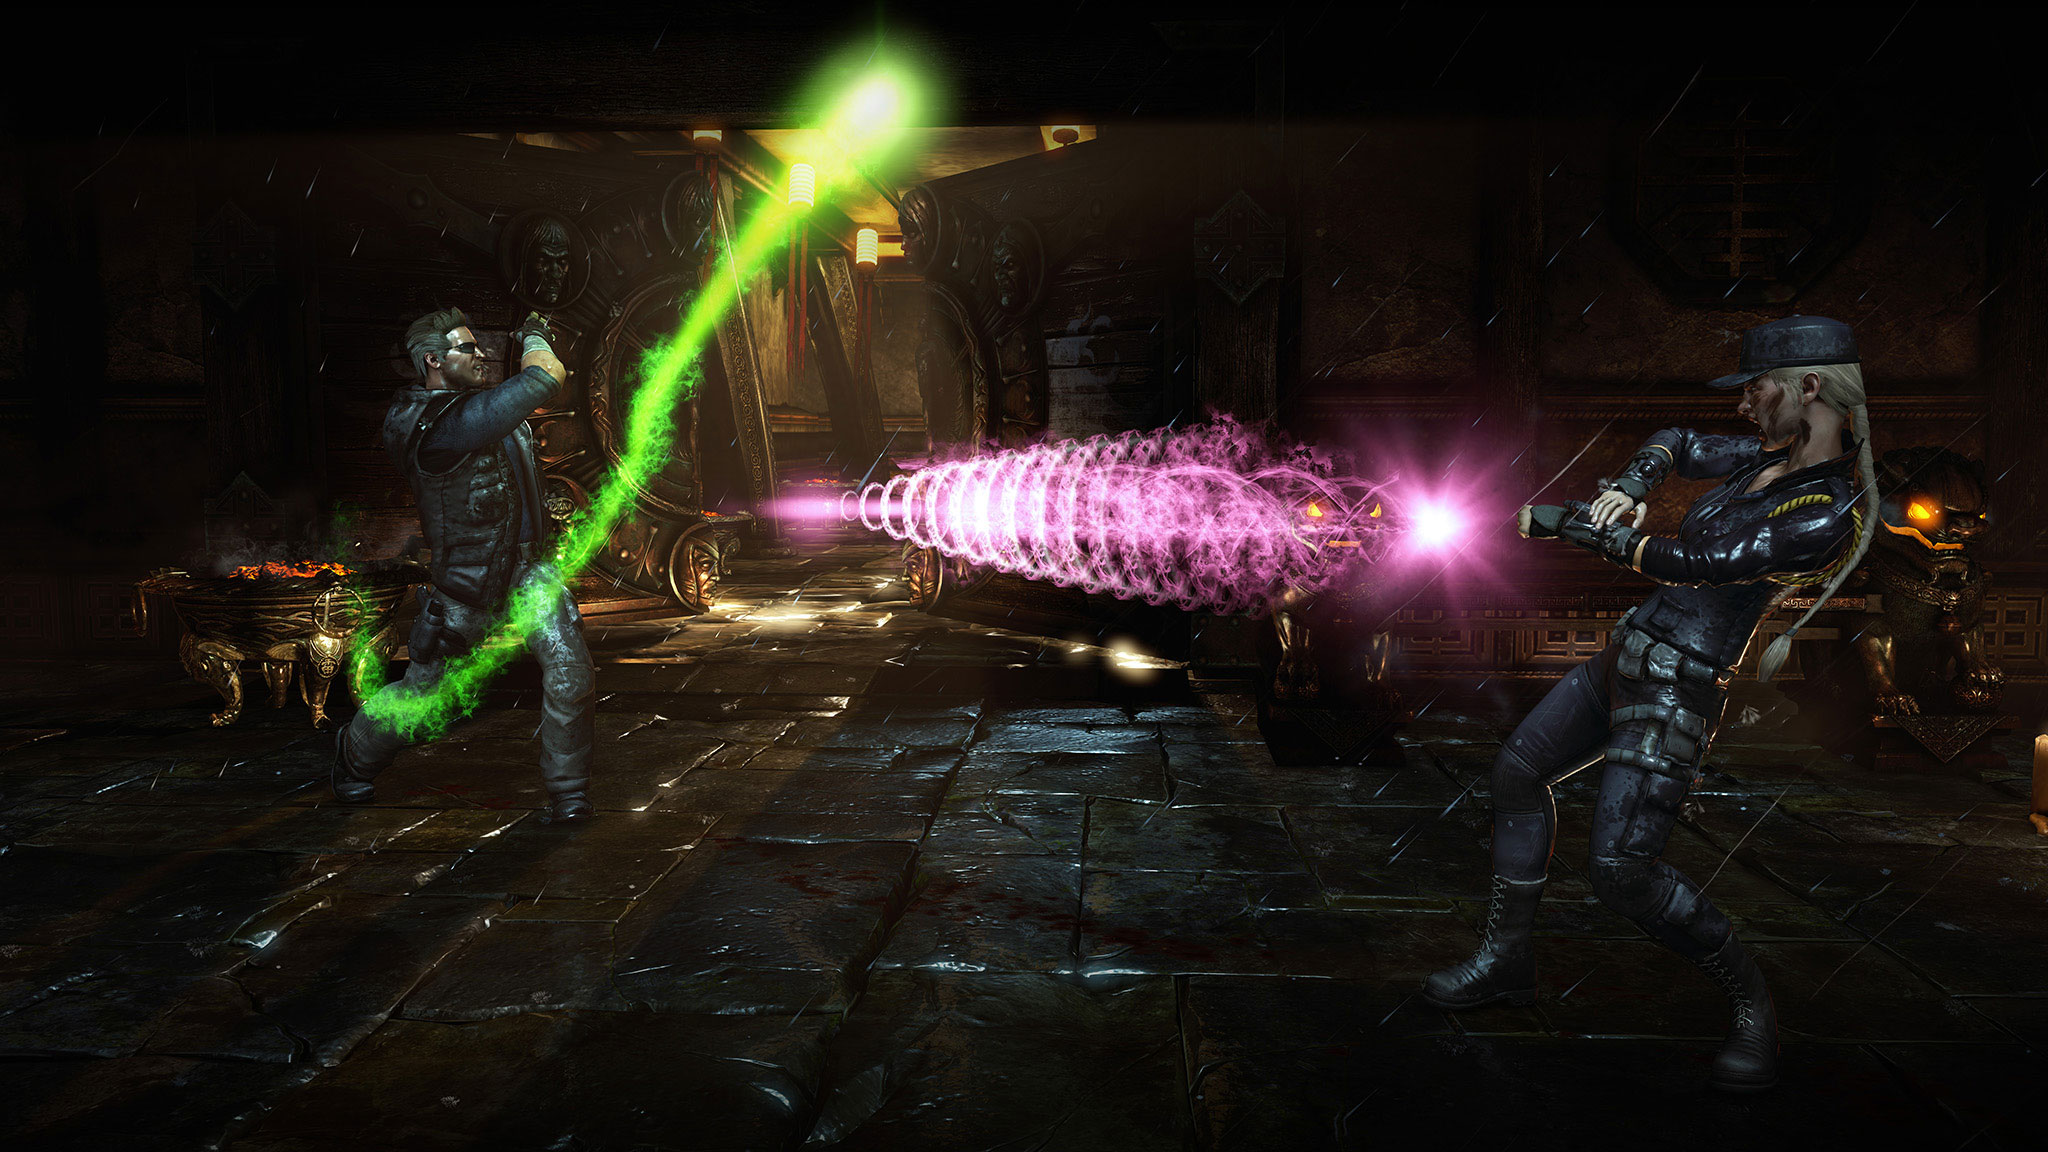 Mortal Kombat X Johnny Cage And Sonya Blade Trailer Sneaks In A Third Character Reveal #32635